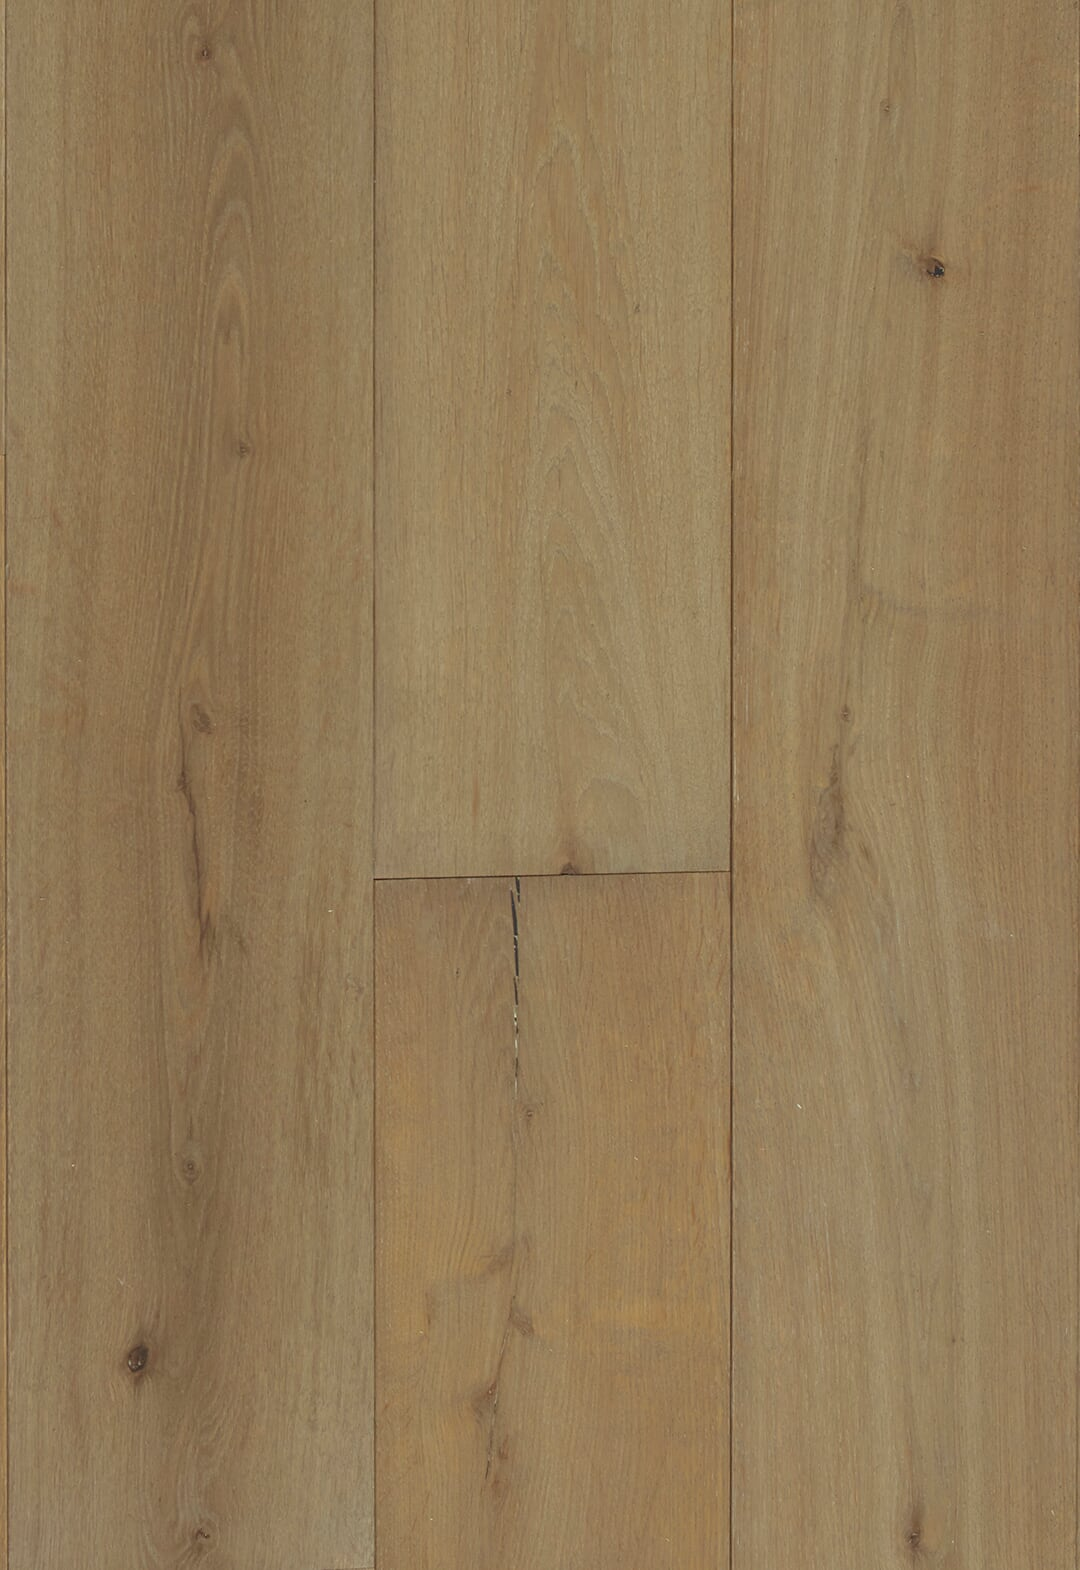 Fine 190mm Wide Engineered Oak Wood Flooring With A Smoked